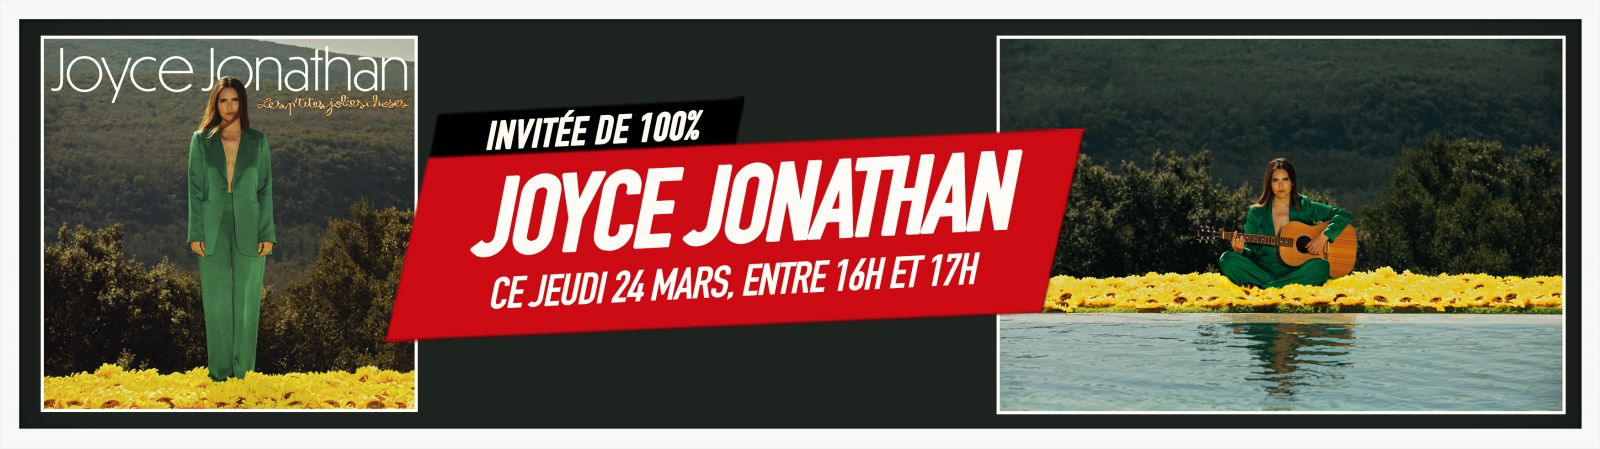 Showcase Joyce Jonathan